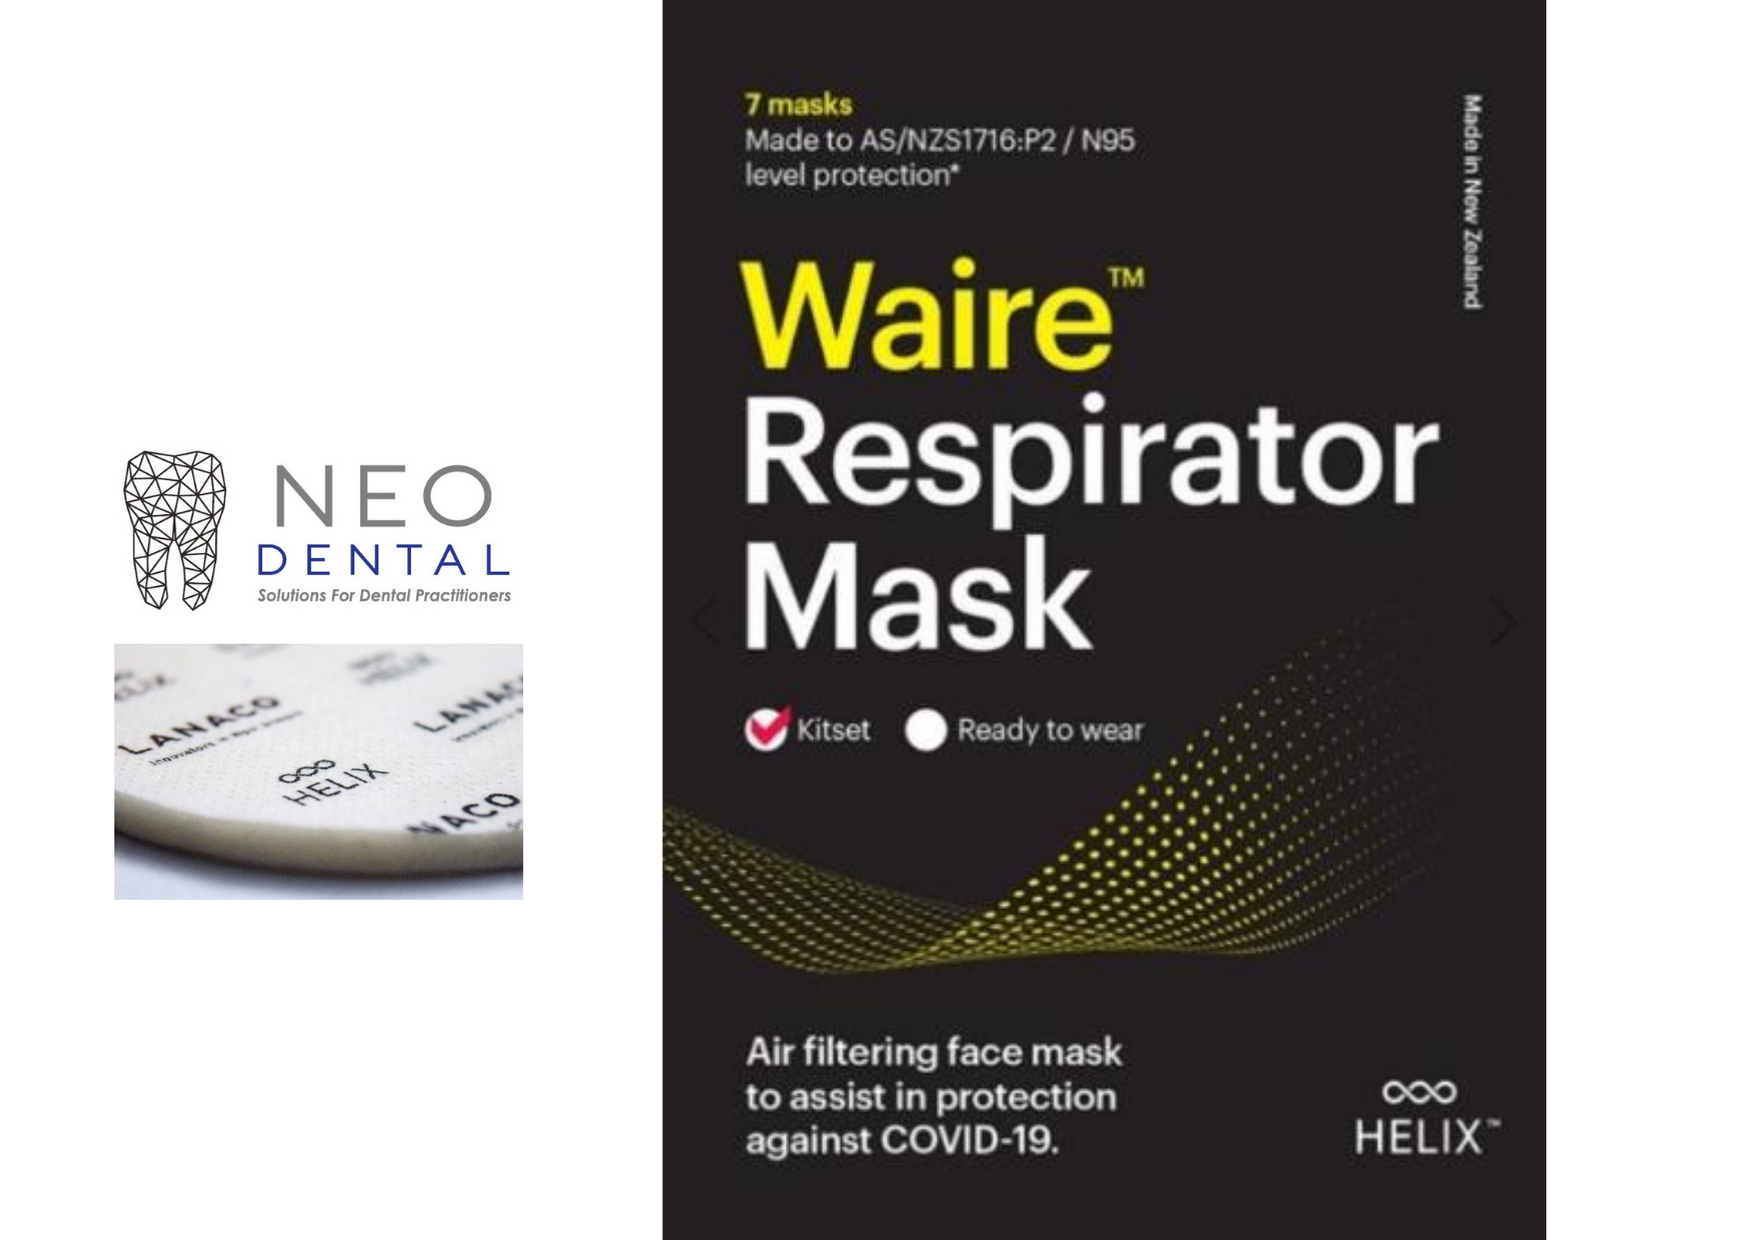 Waire™ Respirator Mask N95 Level (7 masks/pk)